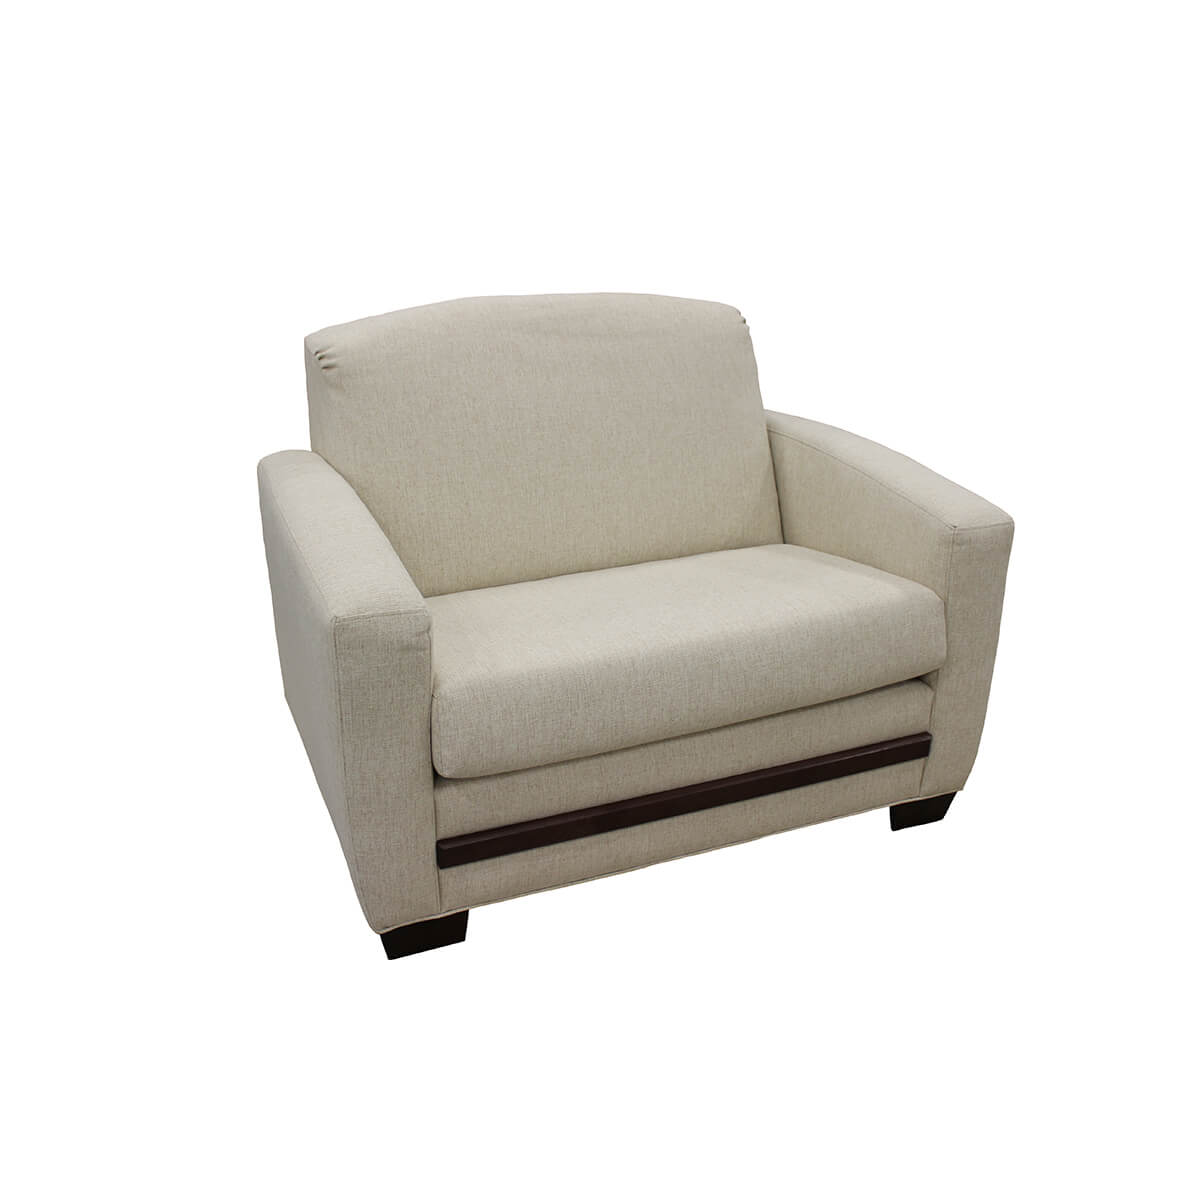 living room furniture chairs stationary